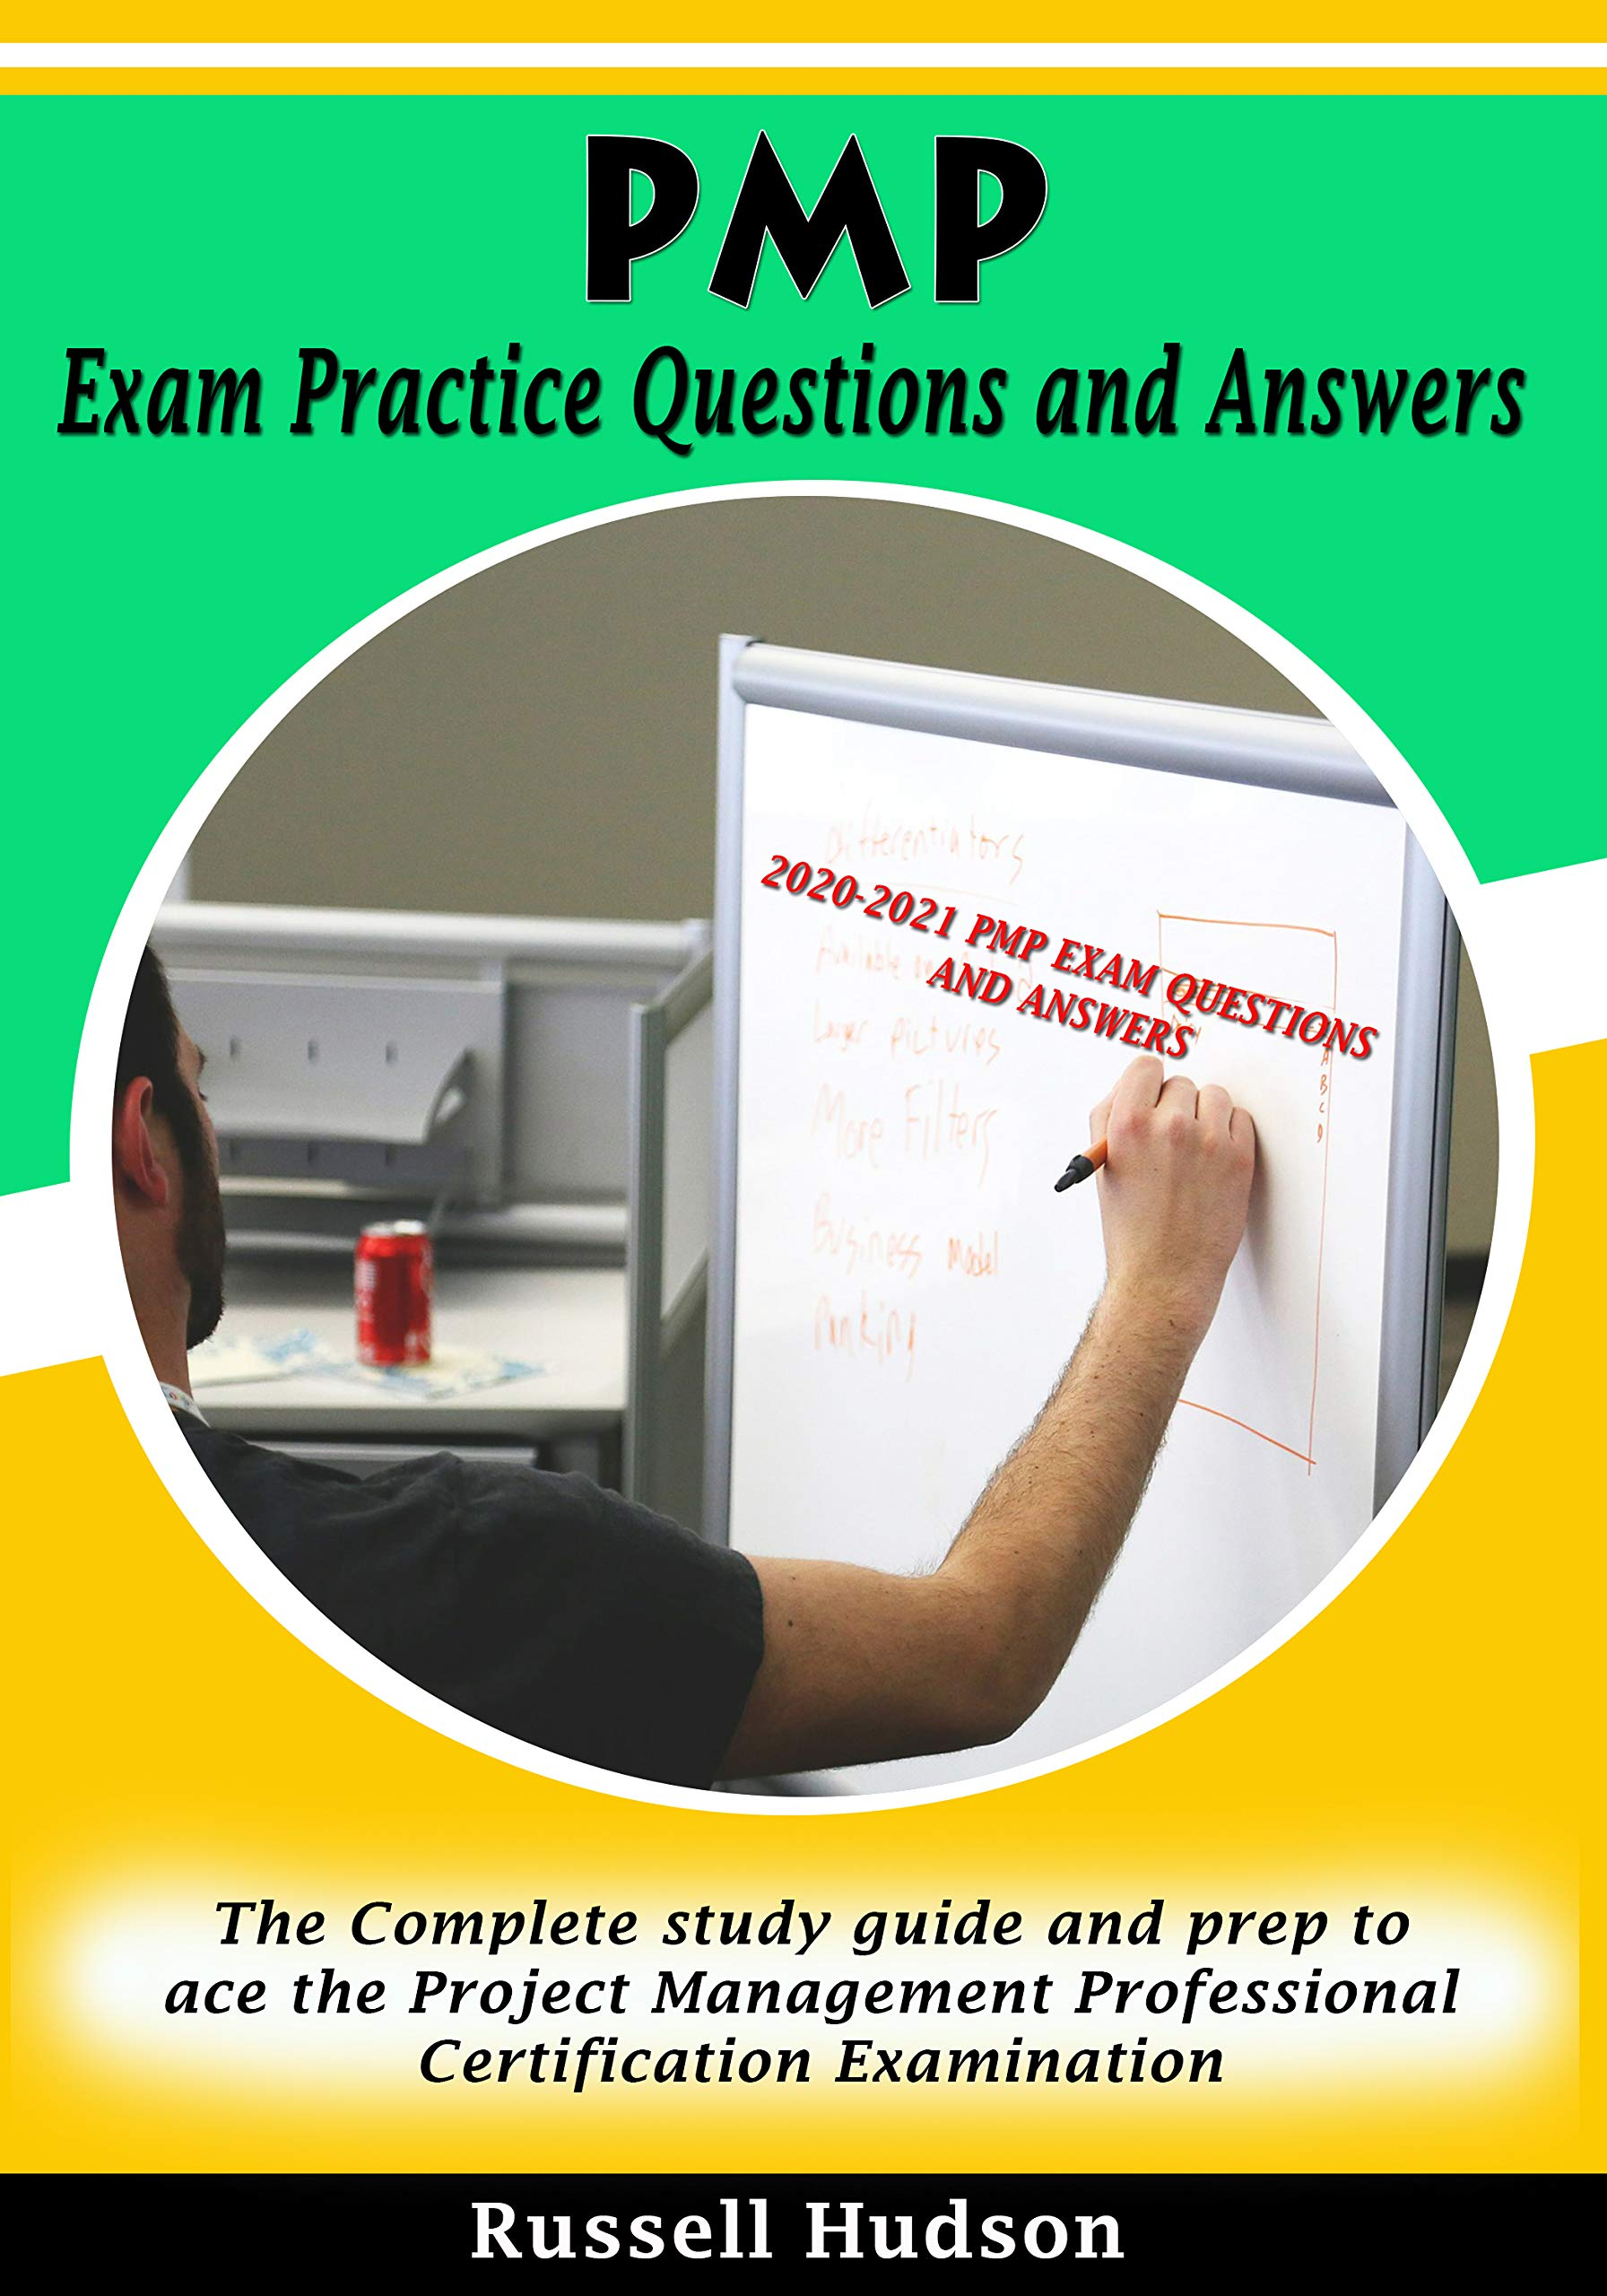 PMP Exam Practice Questions and Answers: The Complete study guide and prep to ace the Project Management Professional Certification Examination